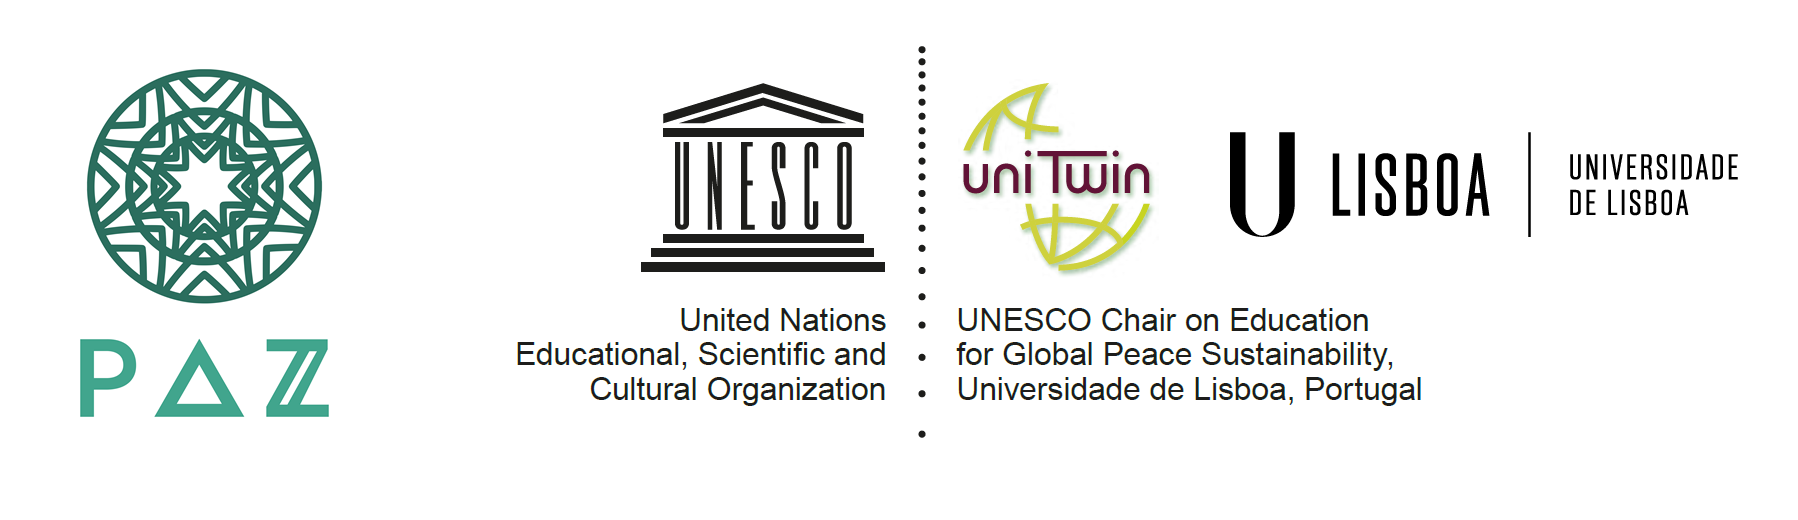 UNESCO CHAIR – Education for Global Peace Sustainability